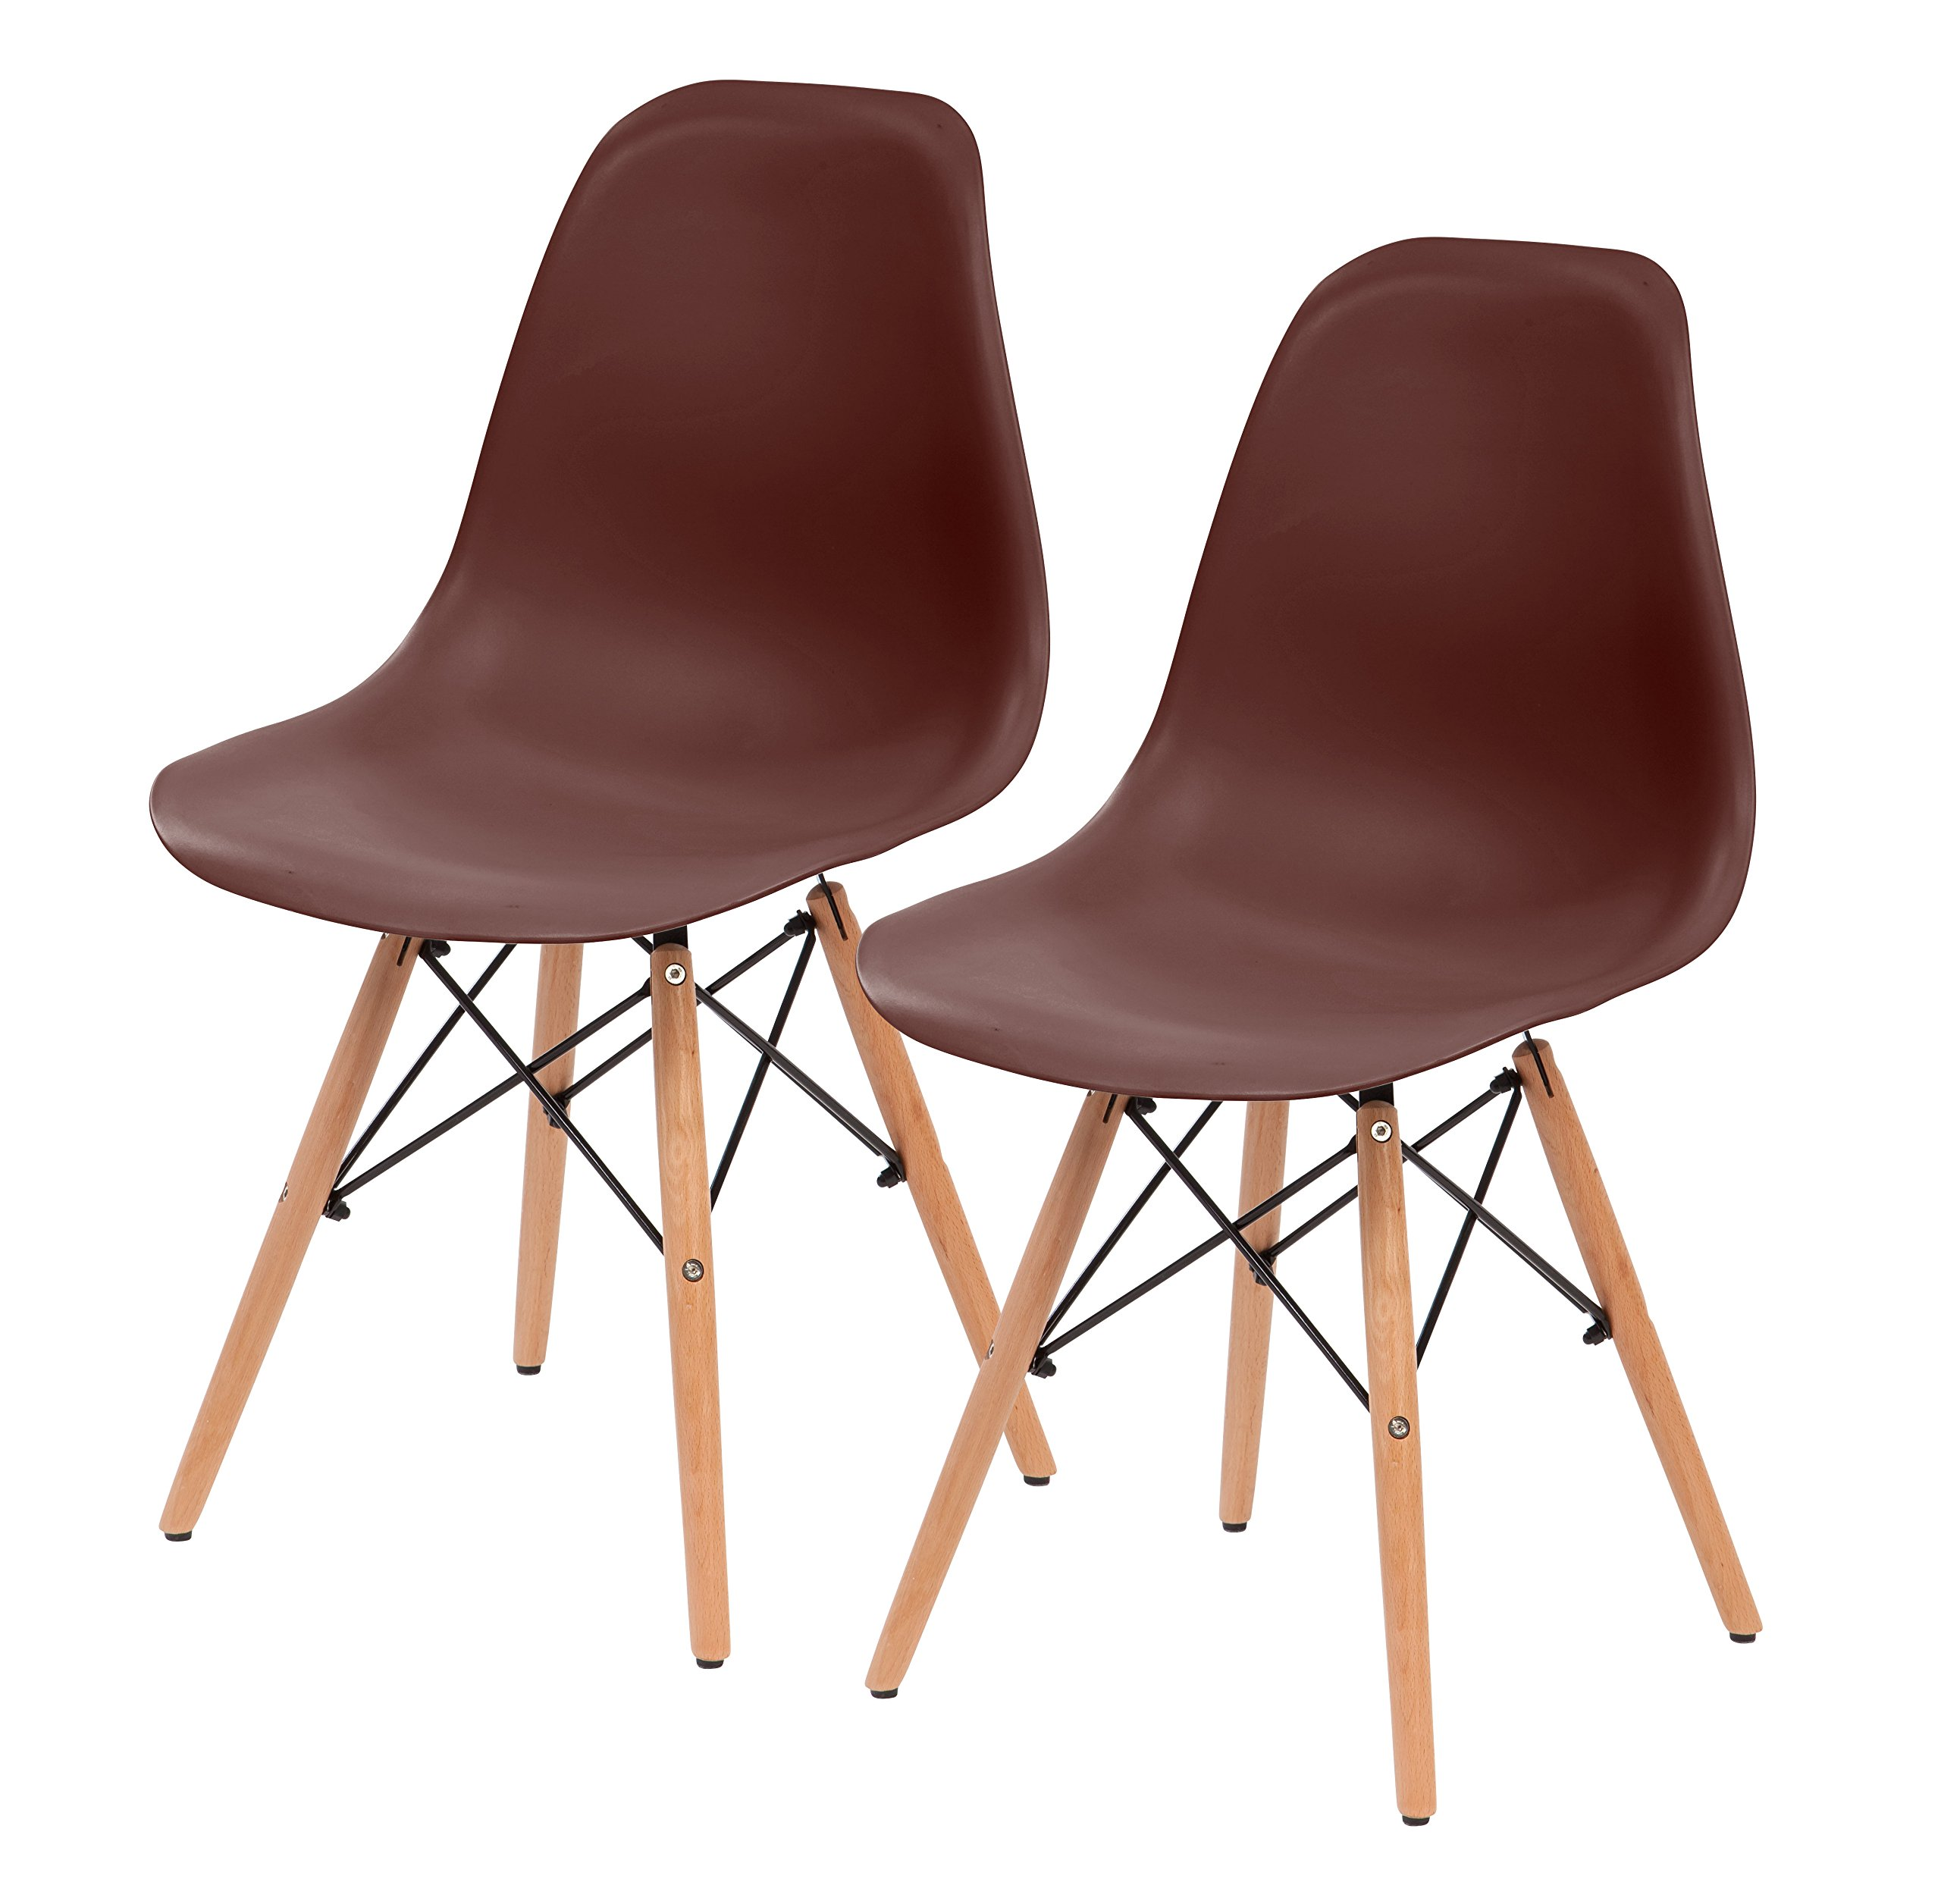 IRIS Mid-Century Modern Shell Chair with Wood Eiffel Legs, 2 Pack, Chocolate Brown